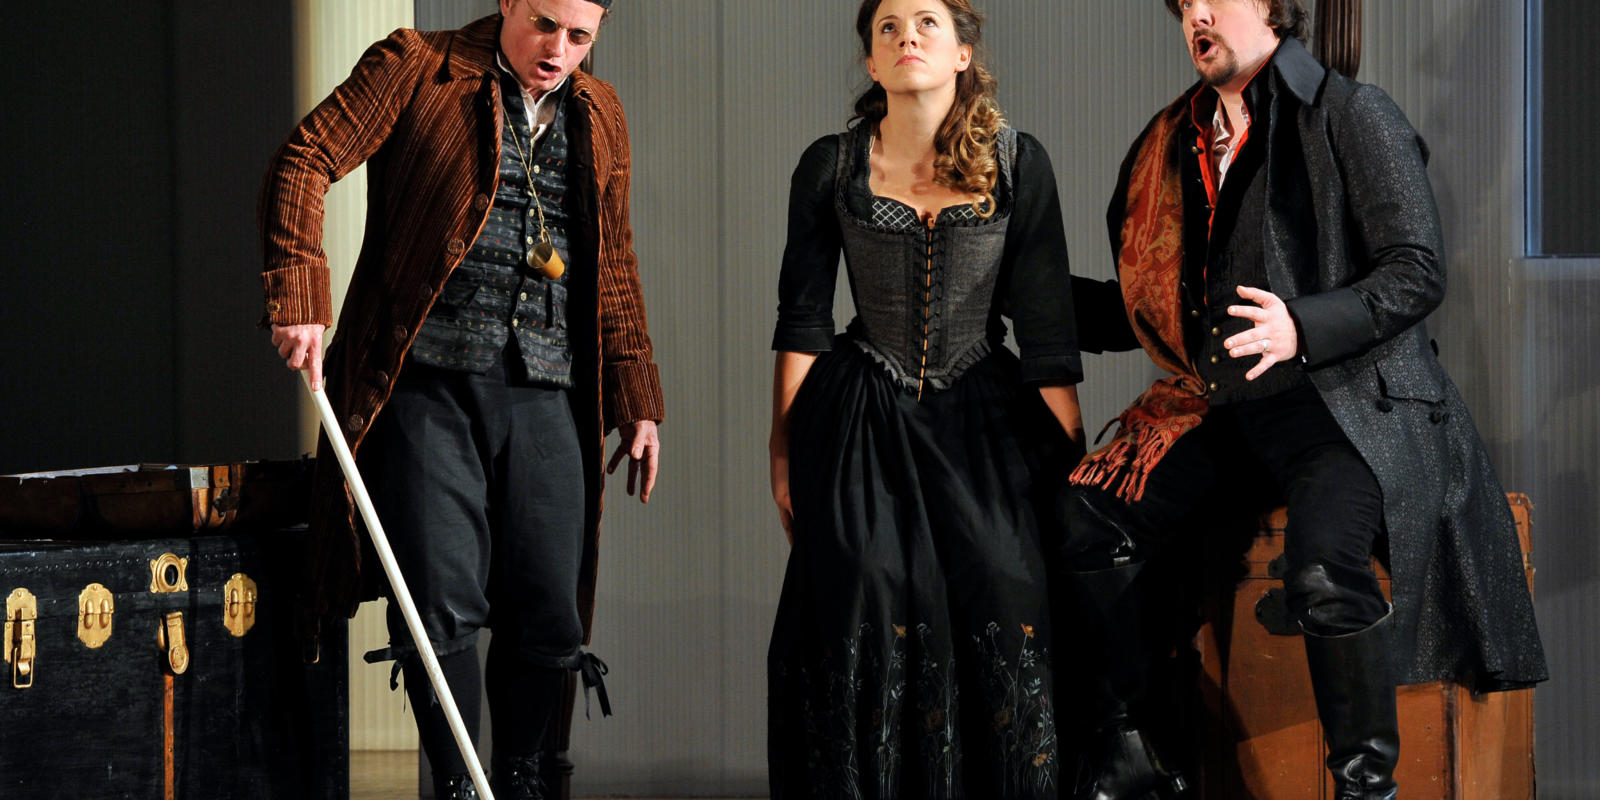 An image of Colin Judson, Mary Bevan and Benedict Nelson in Fiona Shaw's 2014 production of The Marriage of Figaro